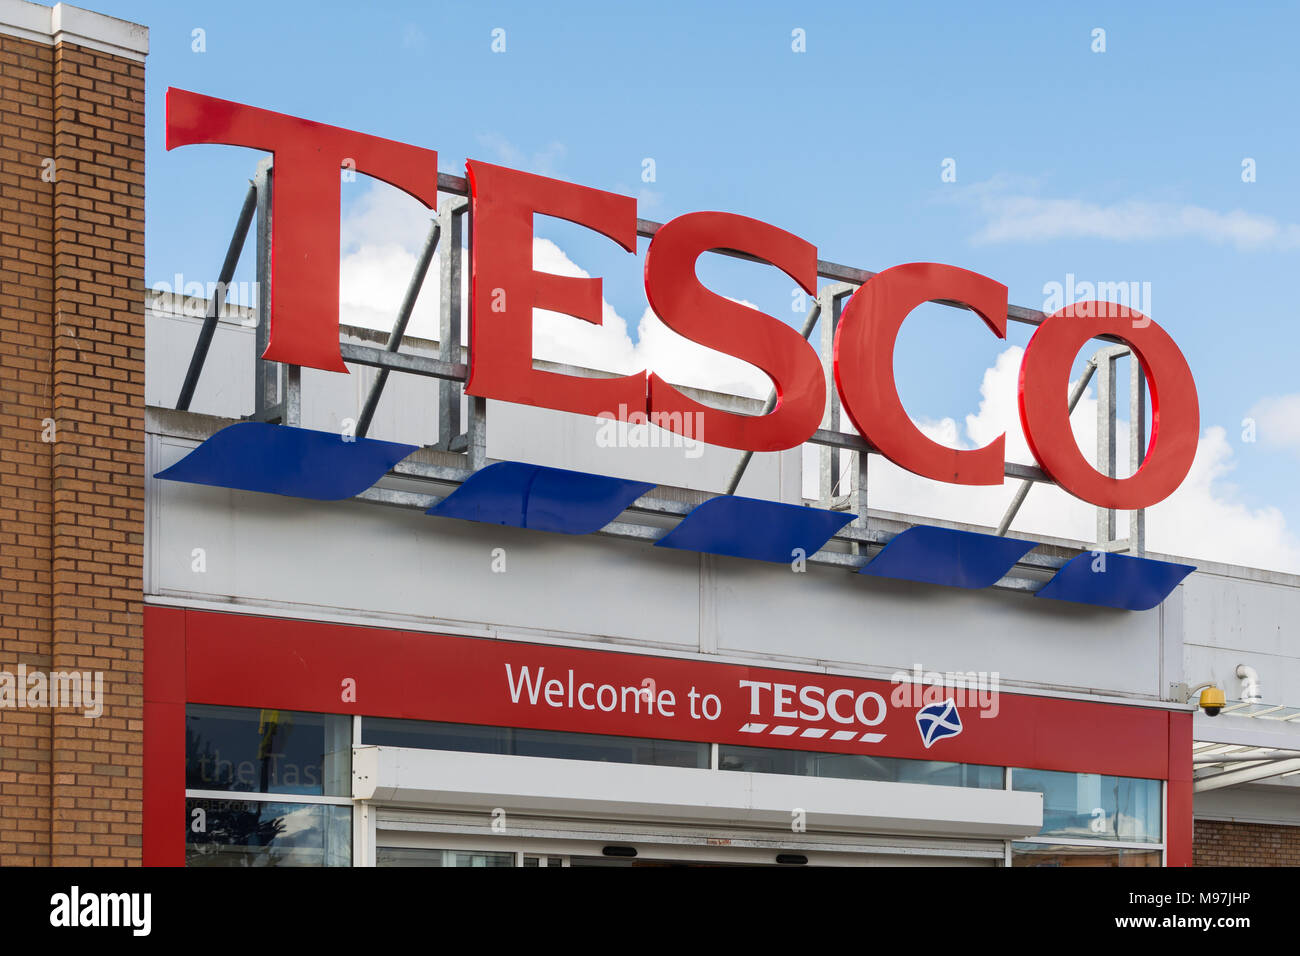 Tesco sign - Stock Image